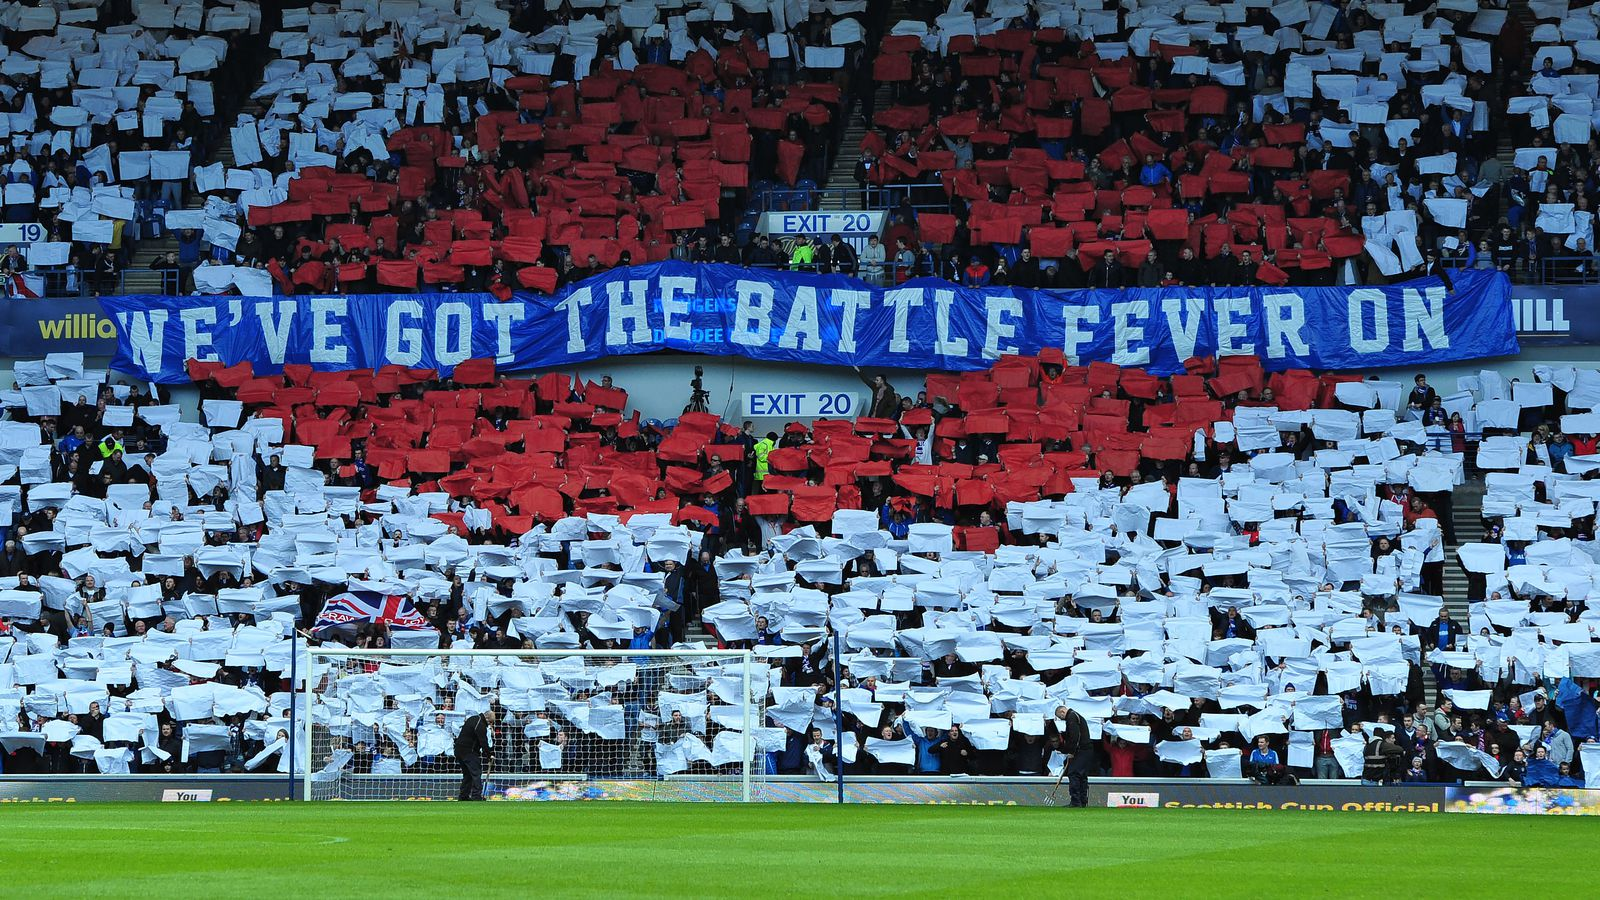 Welcome - Got The Battle Fever On